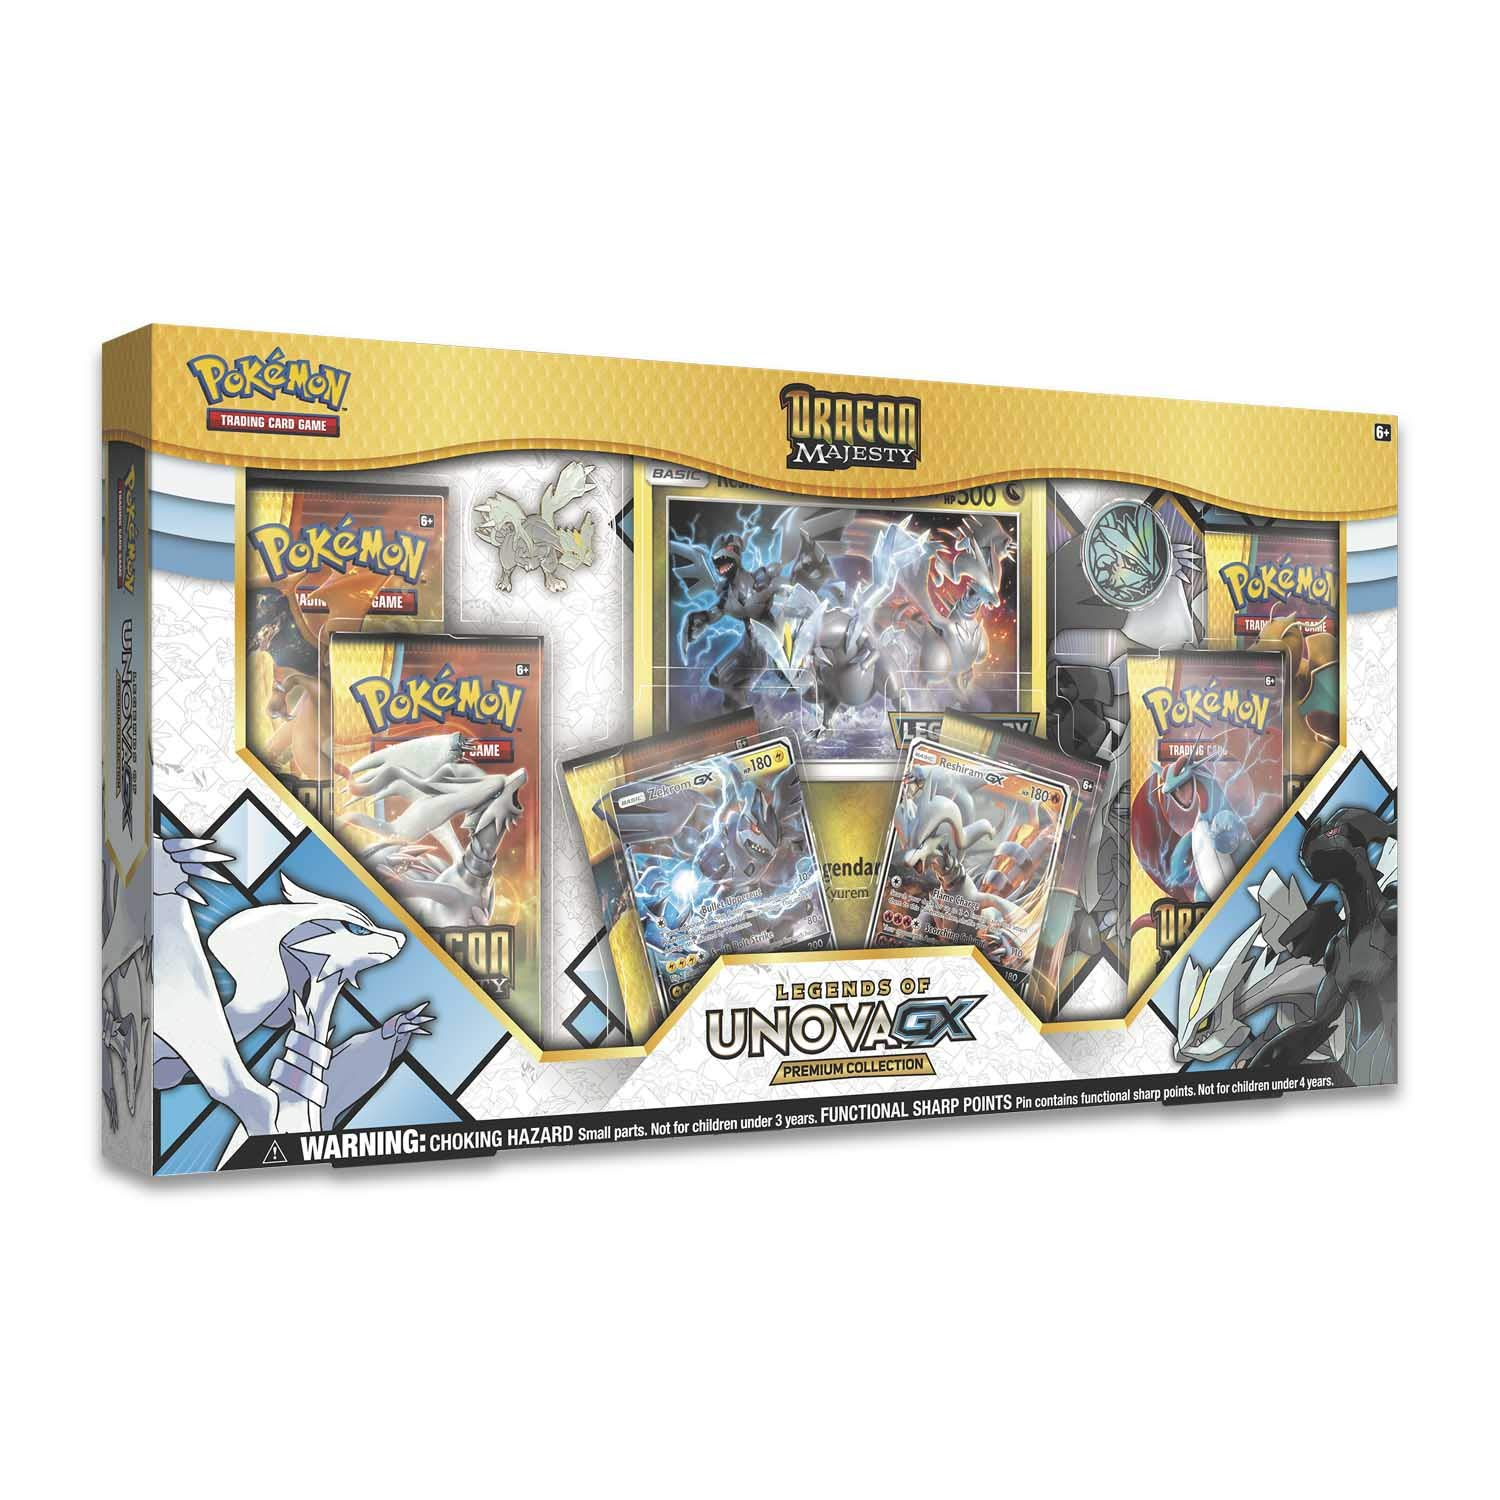 Pokemon TCG: Dragon Majesty Legends of Unova GX Premium Collection - 6 Booster Pack with A Foil Promo Card of Zekrom - Reshiram by Pokemon